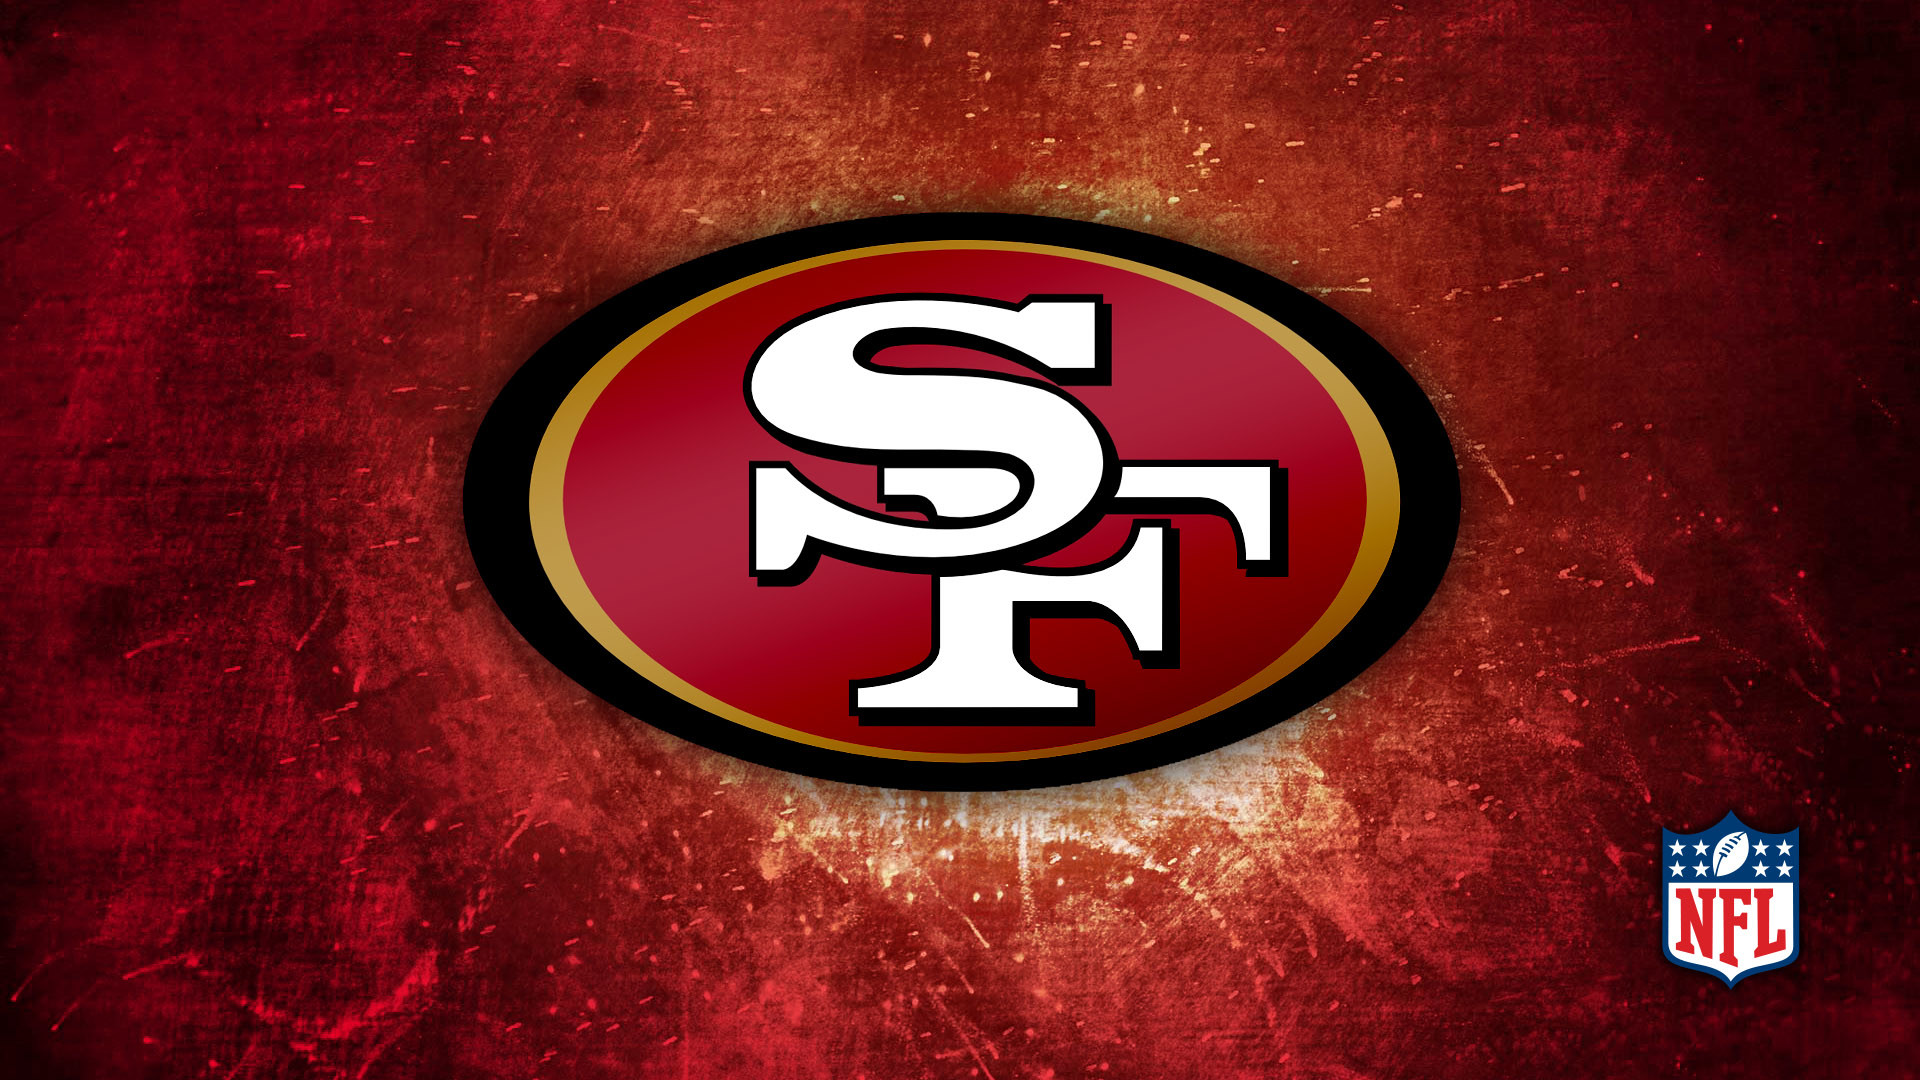 San Francisco 49ers logo background – HD Wallpapers